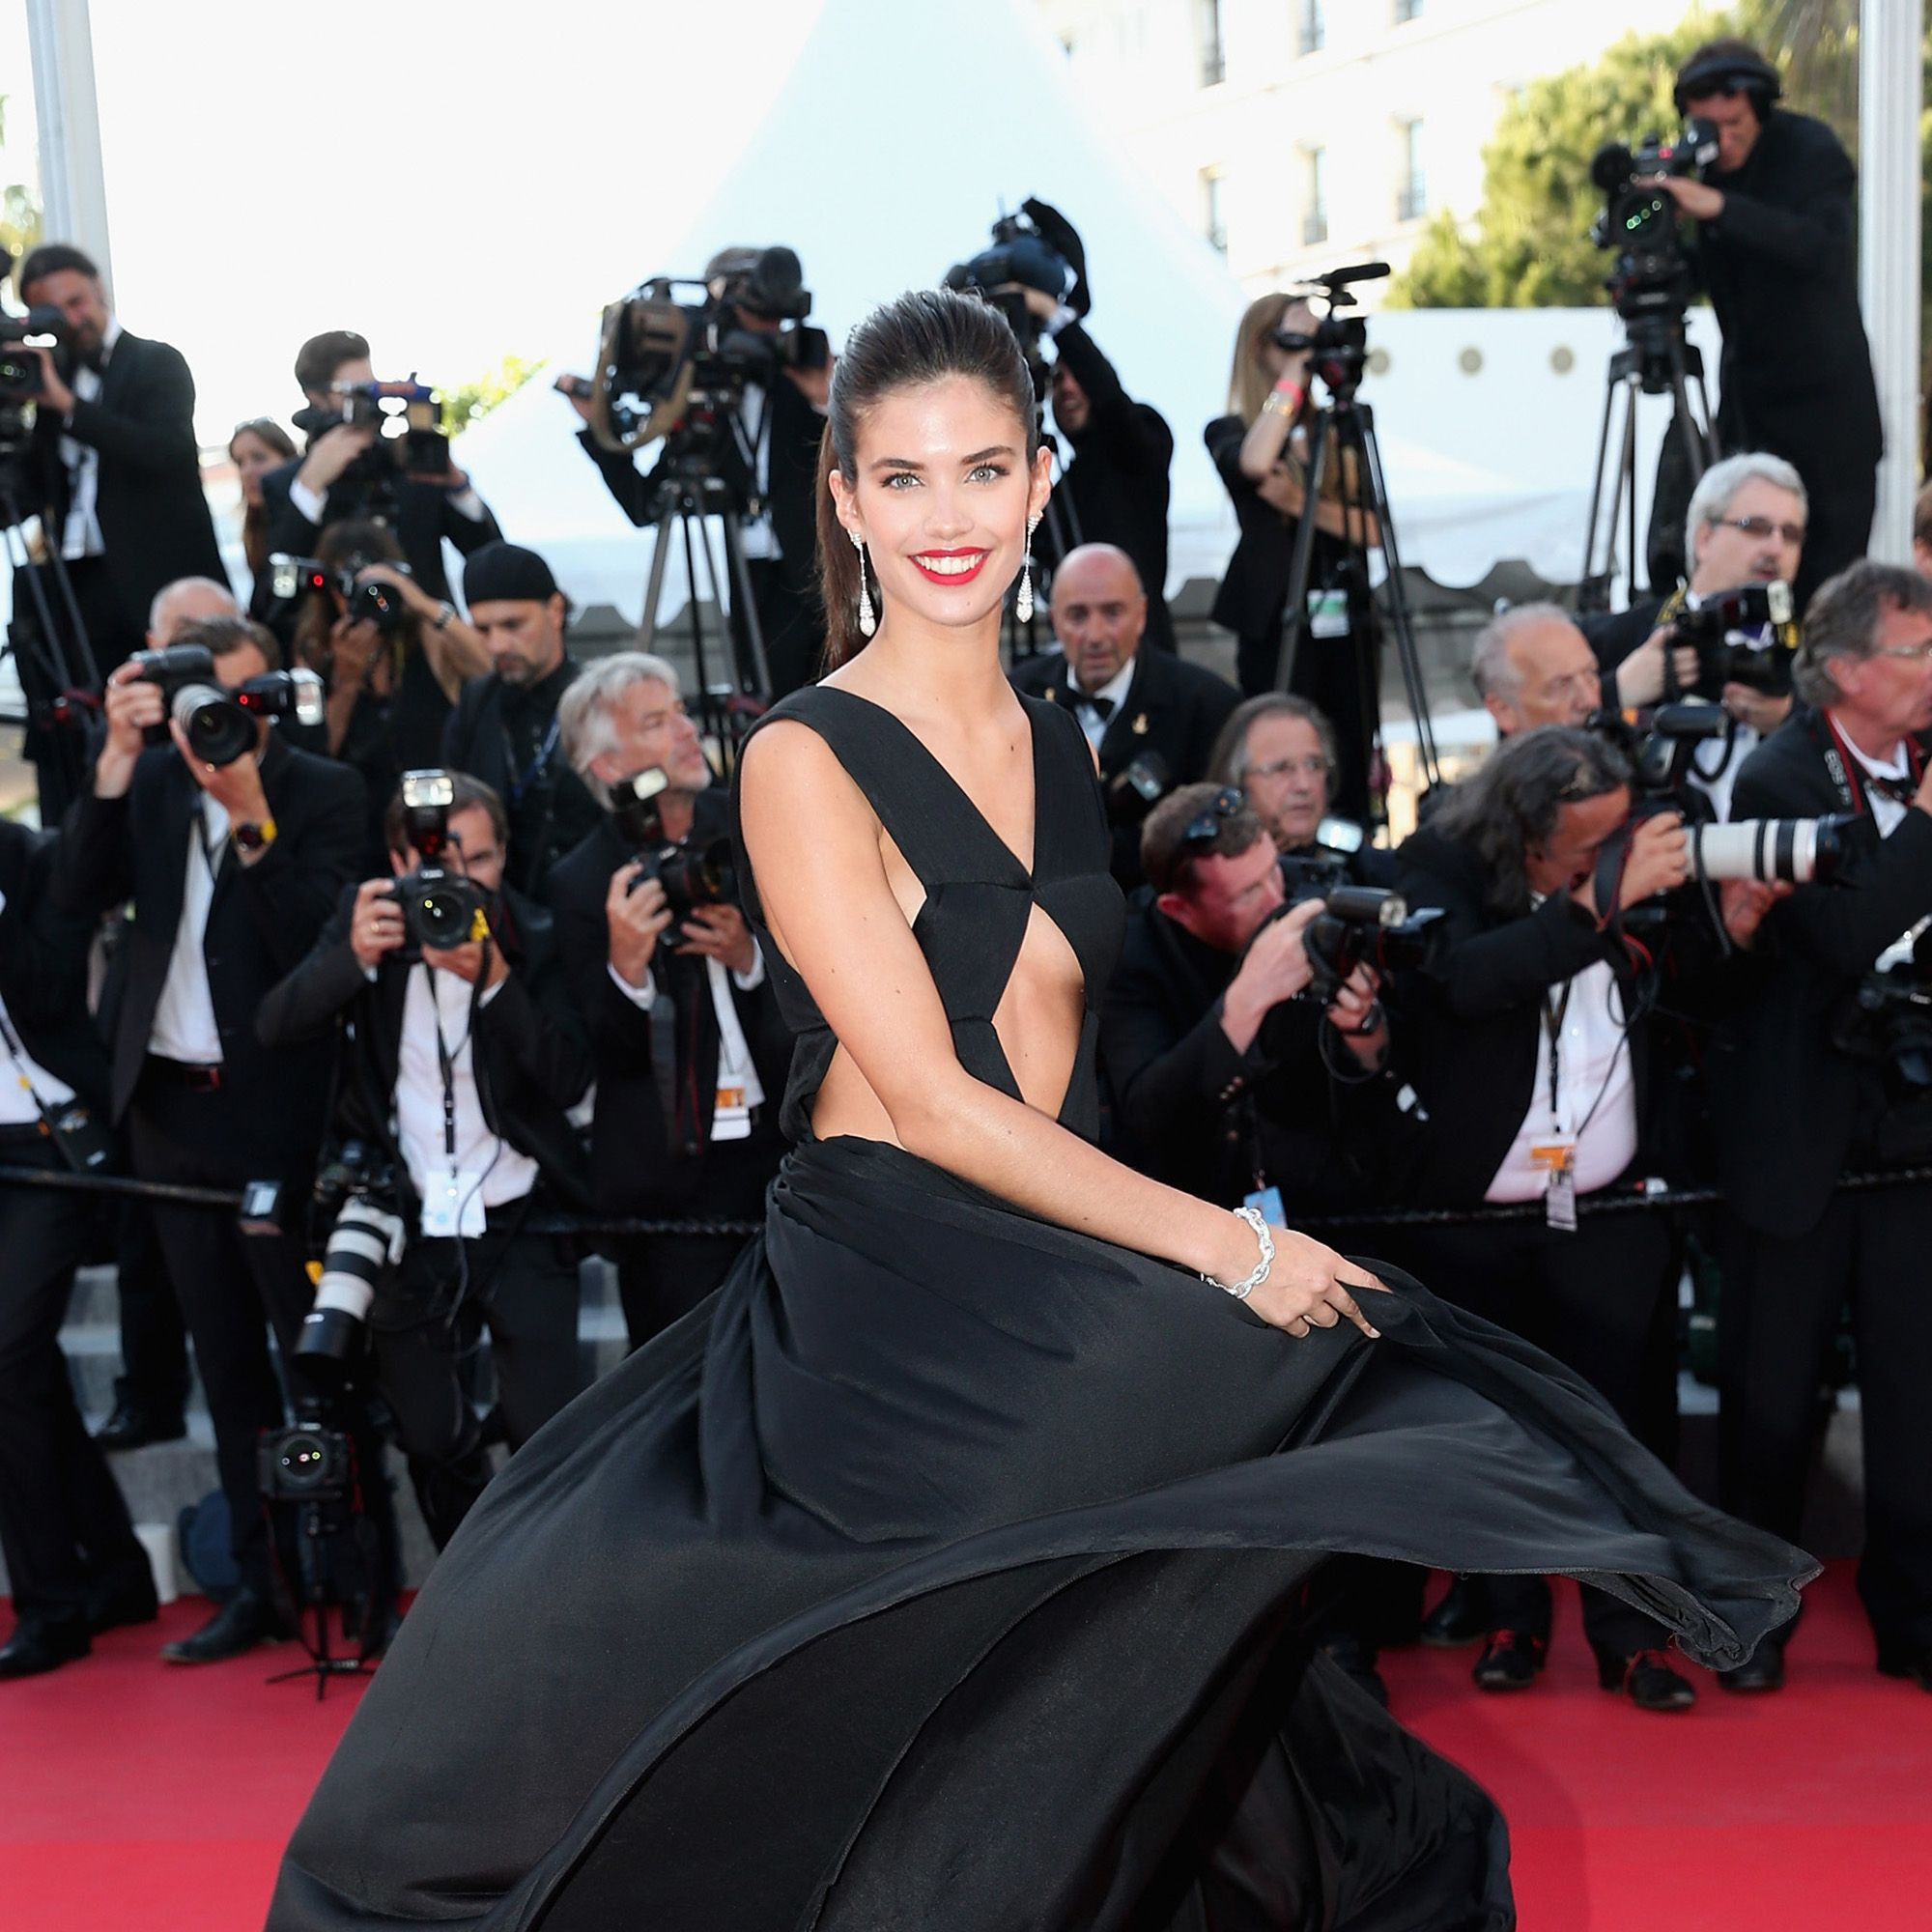 """CANNES, FRANCE - MAY 18: Model Sara Sampaio attends the Premiere of """"Inside Out"""" during the 68th annual Cannes Film Festival on May 18, 2015 in Cannes, France.  (Photo by Gisela Schober/Getty Images)"""